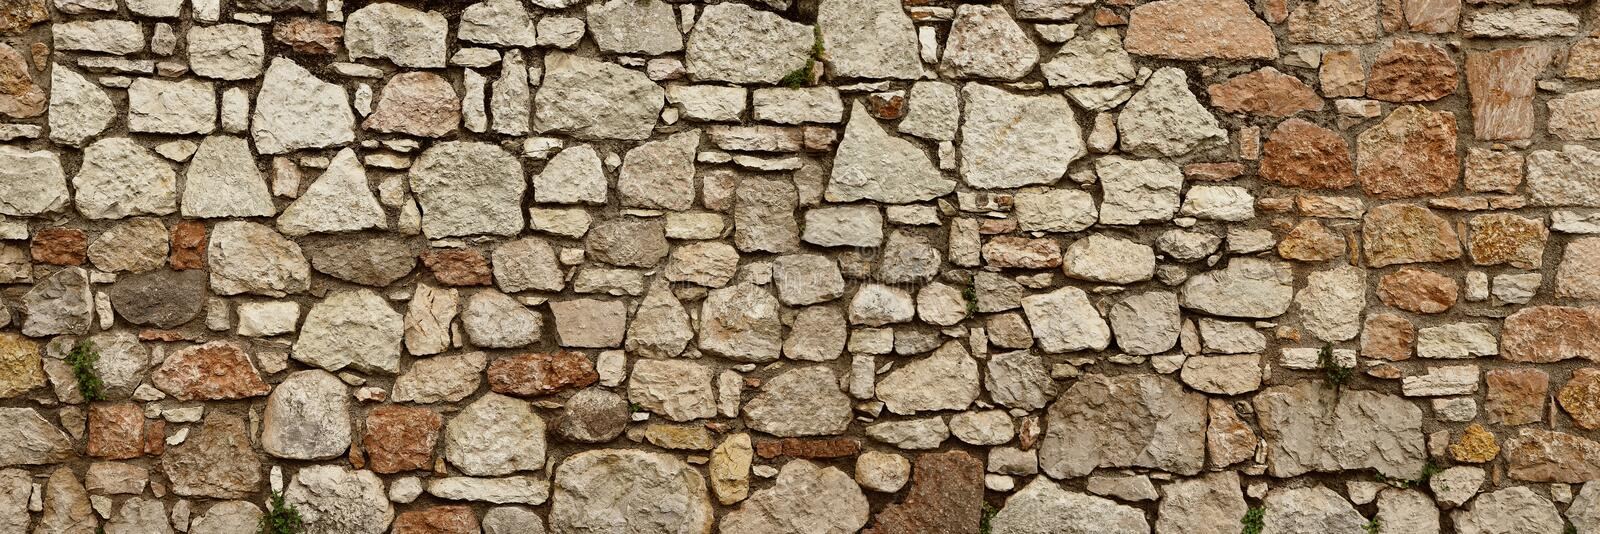 Stone wall of natural blocks in various sizes, sepia toned royalty free stock photography